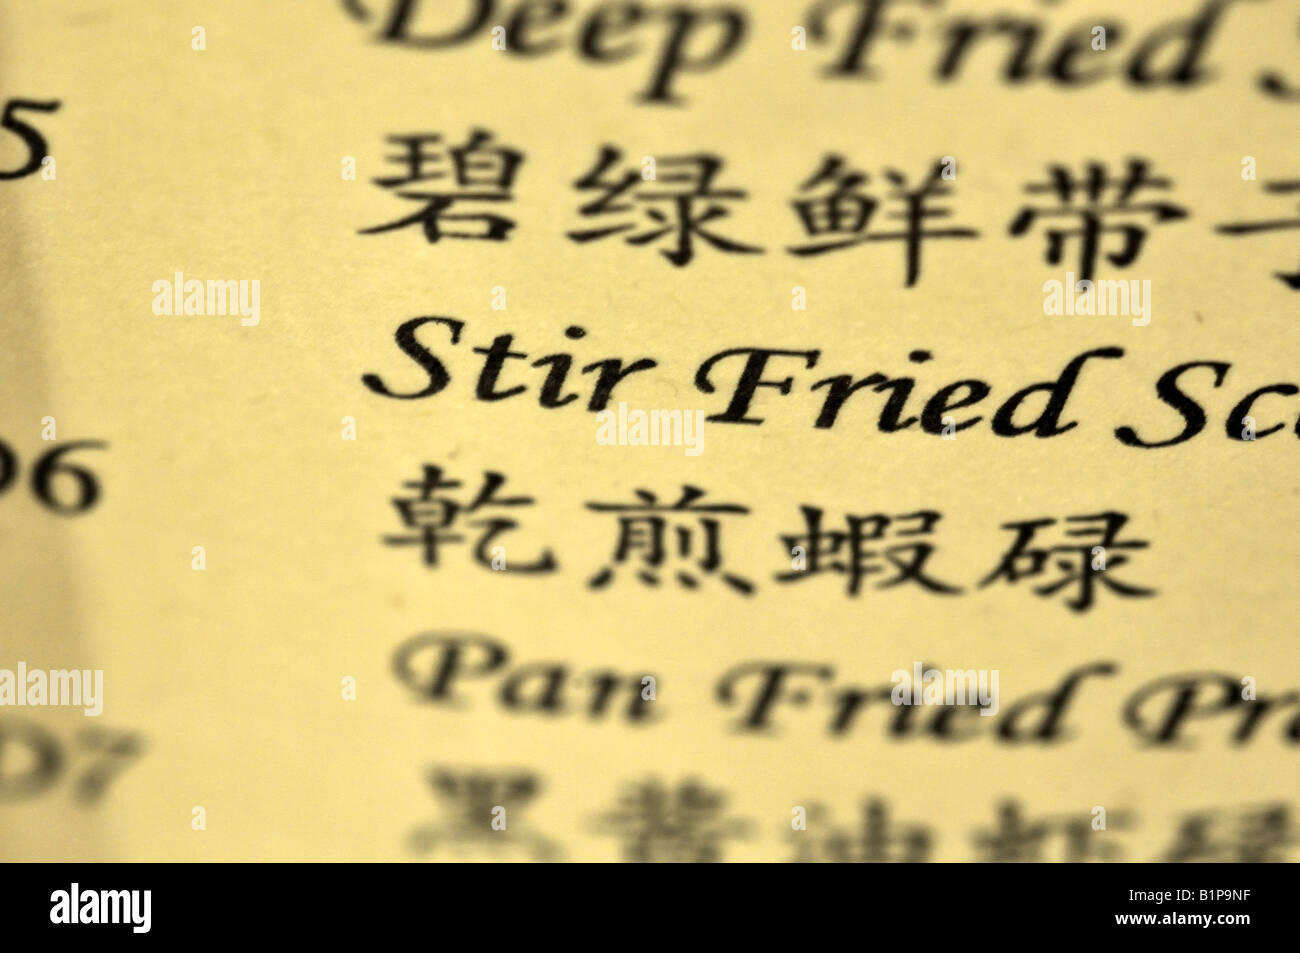 Bilingual Chinese restaurant menu in traditional Chinese and